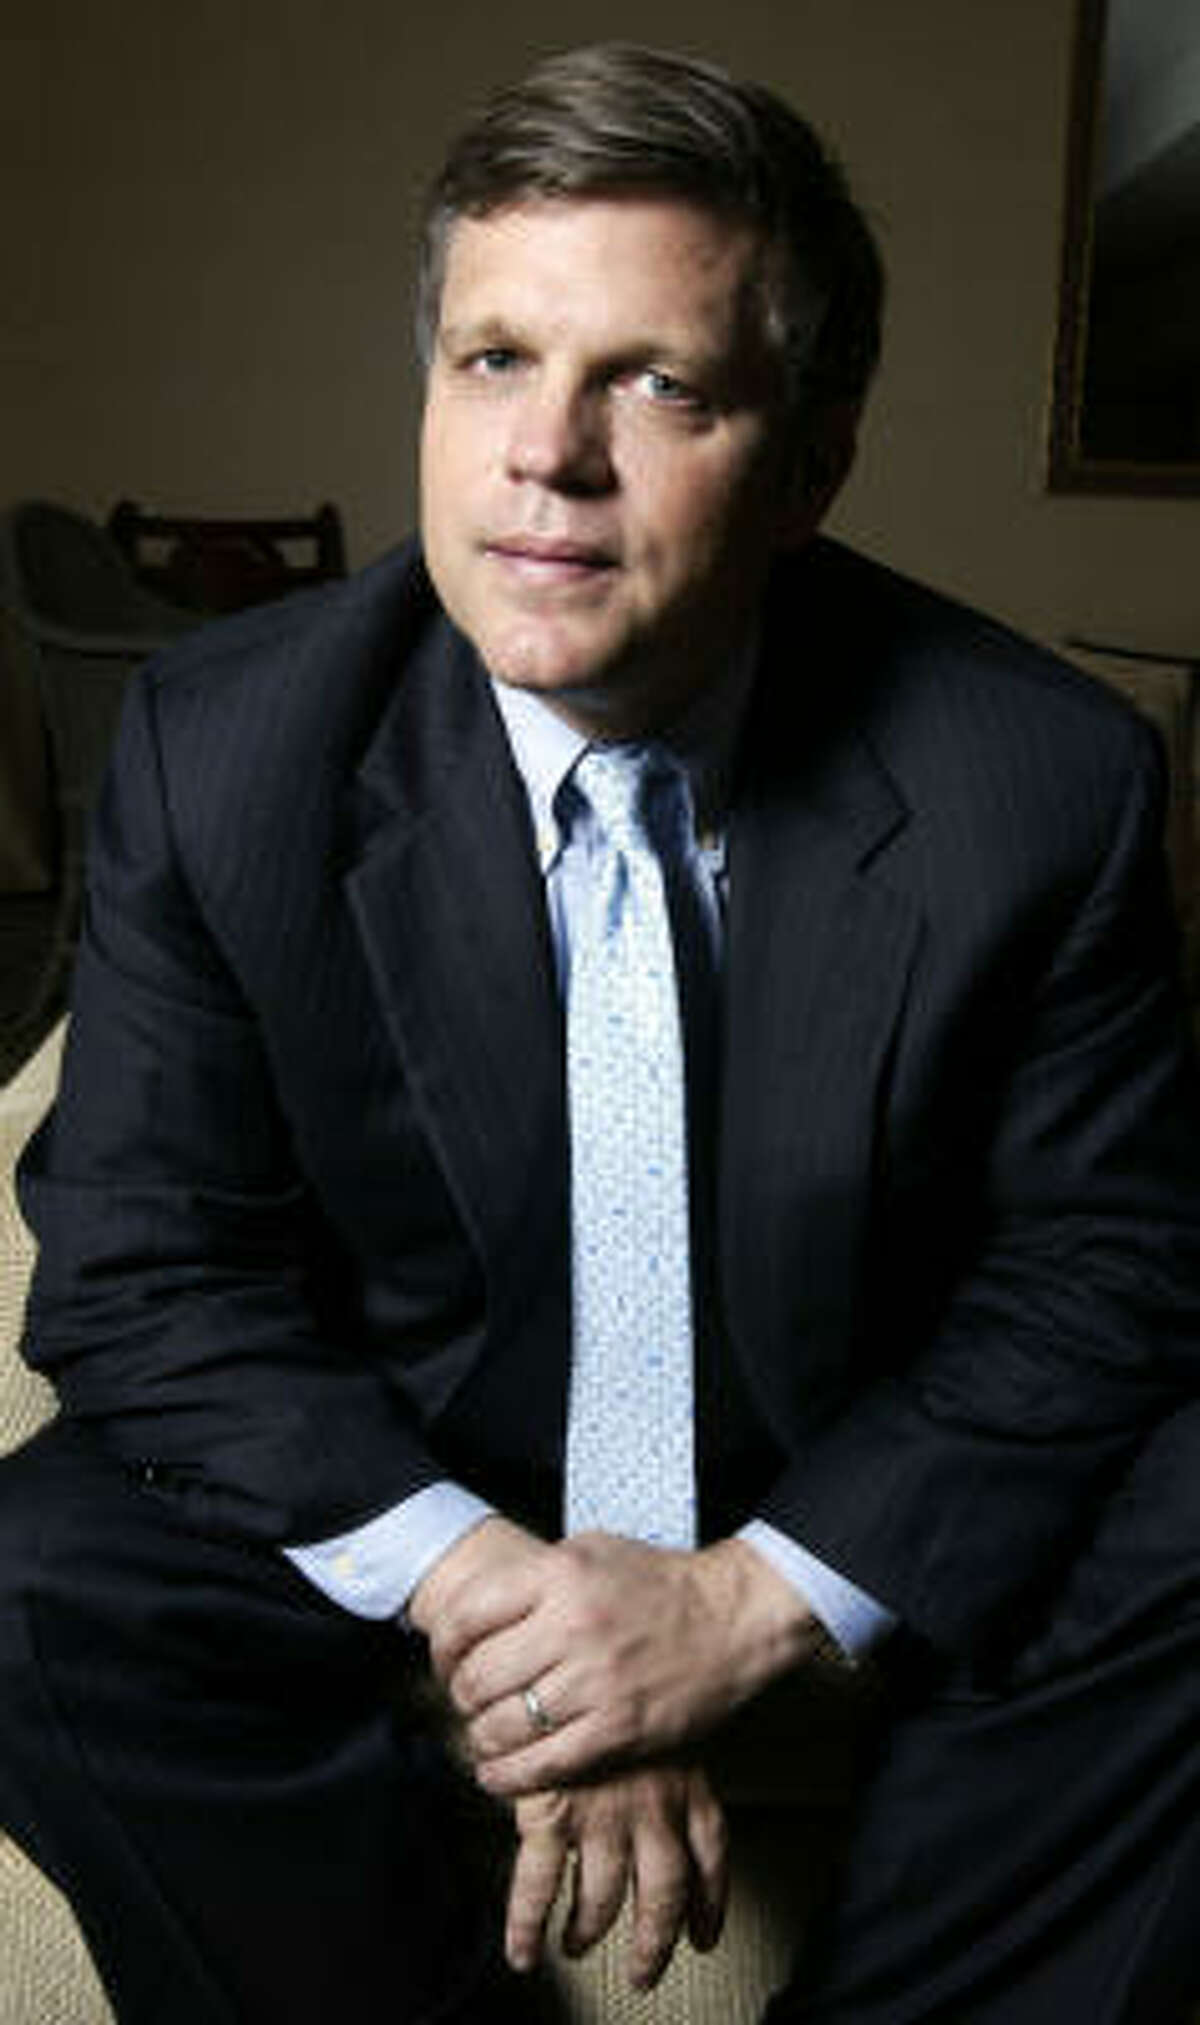 Historian Douglas Brinkley and his family fled to Houston from New Orleans after Hurricane Katrina.